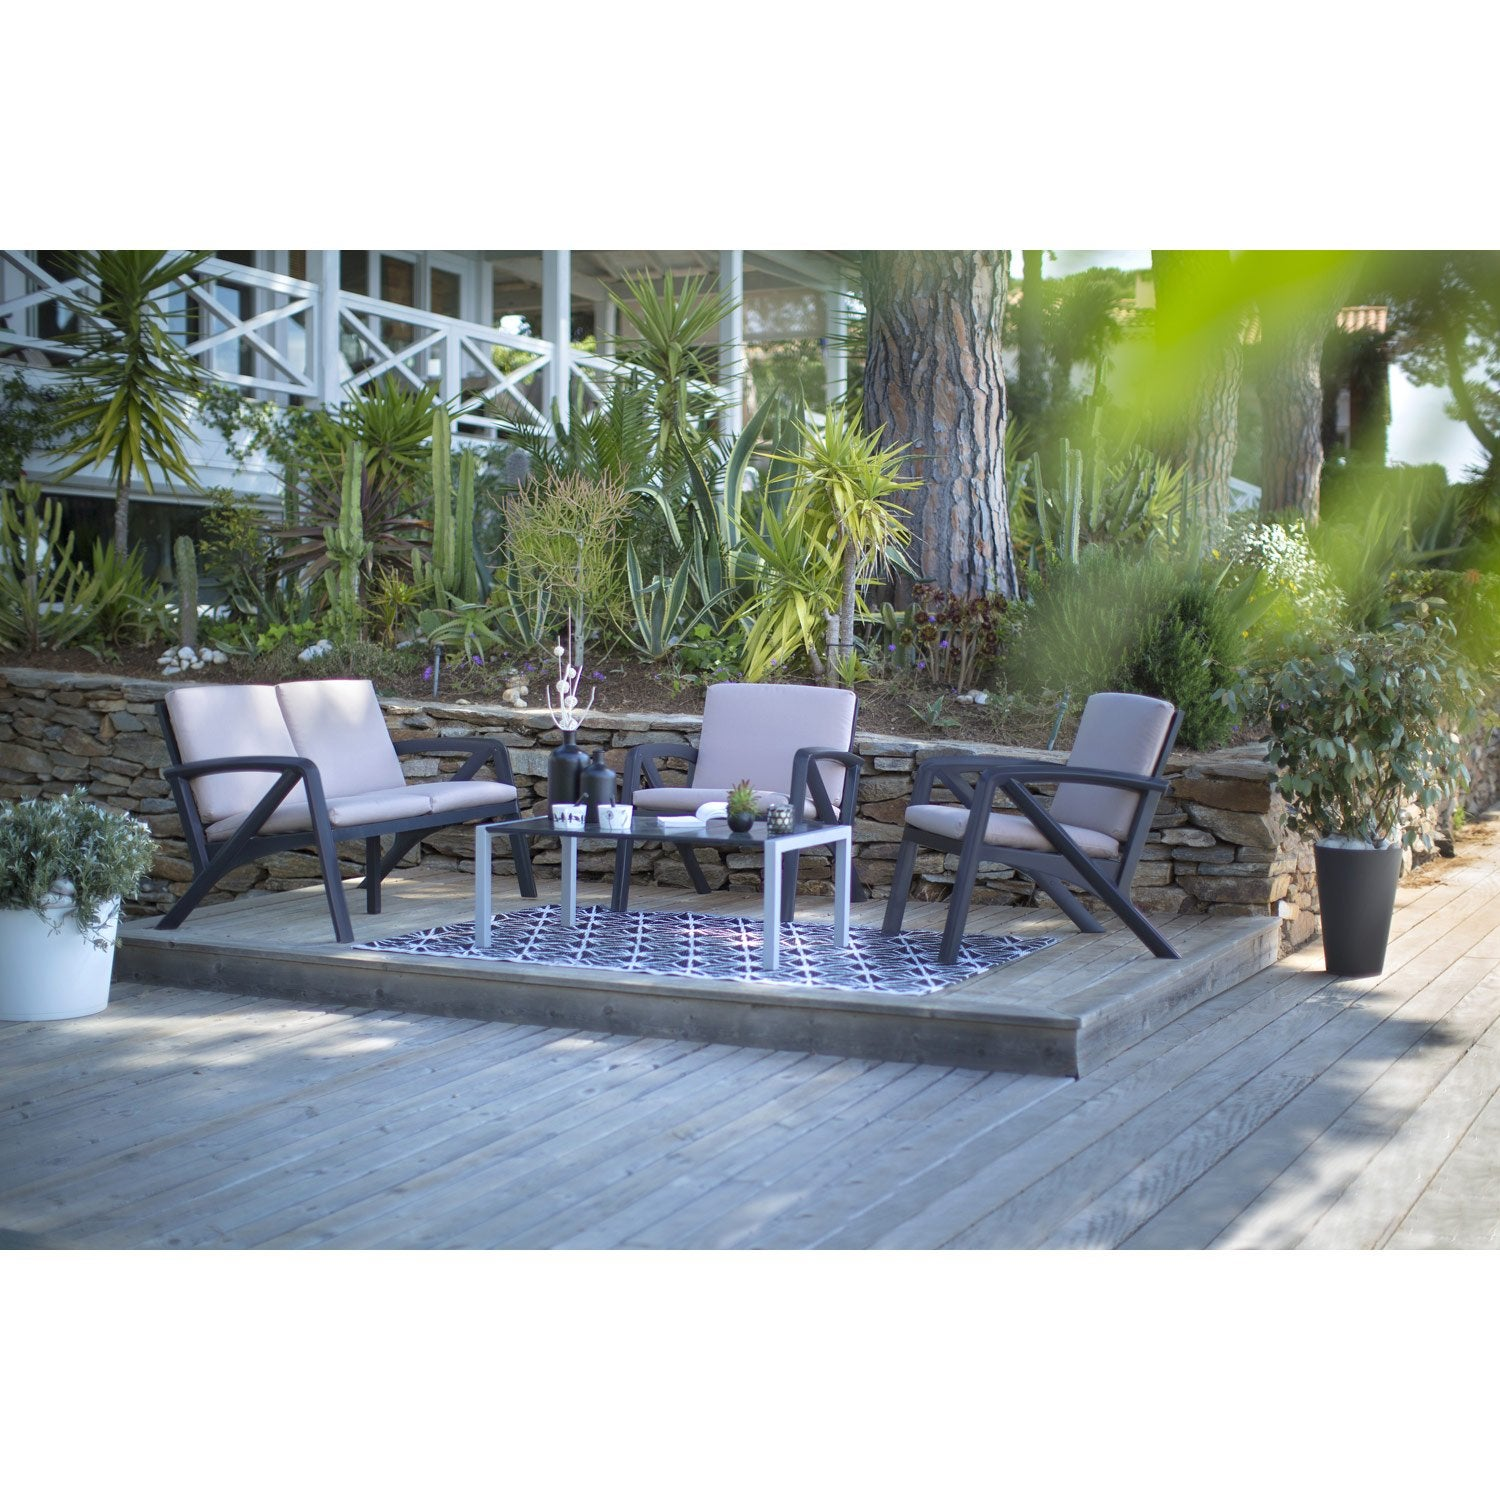 salon bas de jardin sunday r sine plastique table. Black Bedroom Furniture Sets. Home Design Ideas